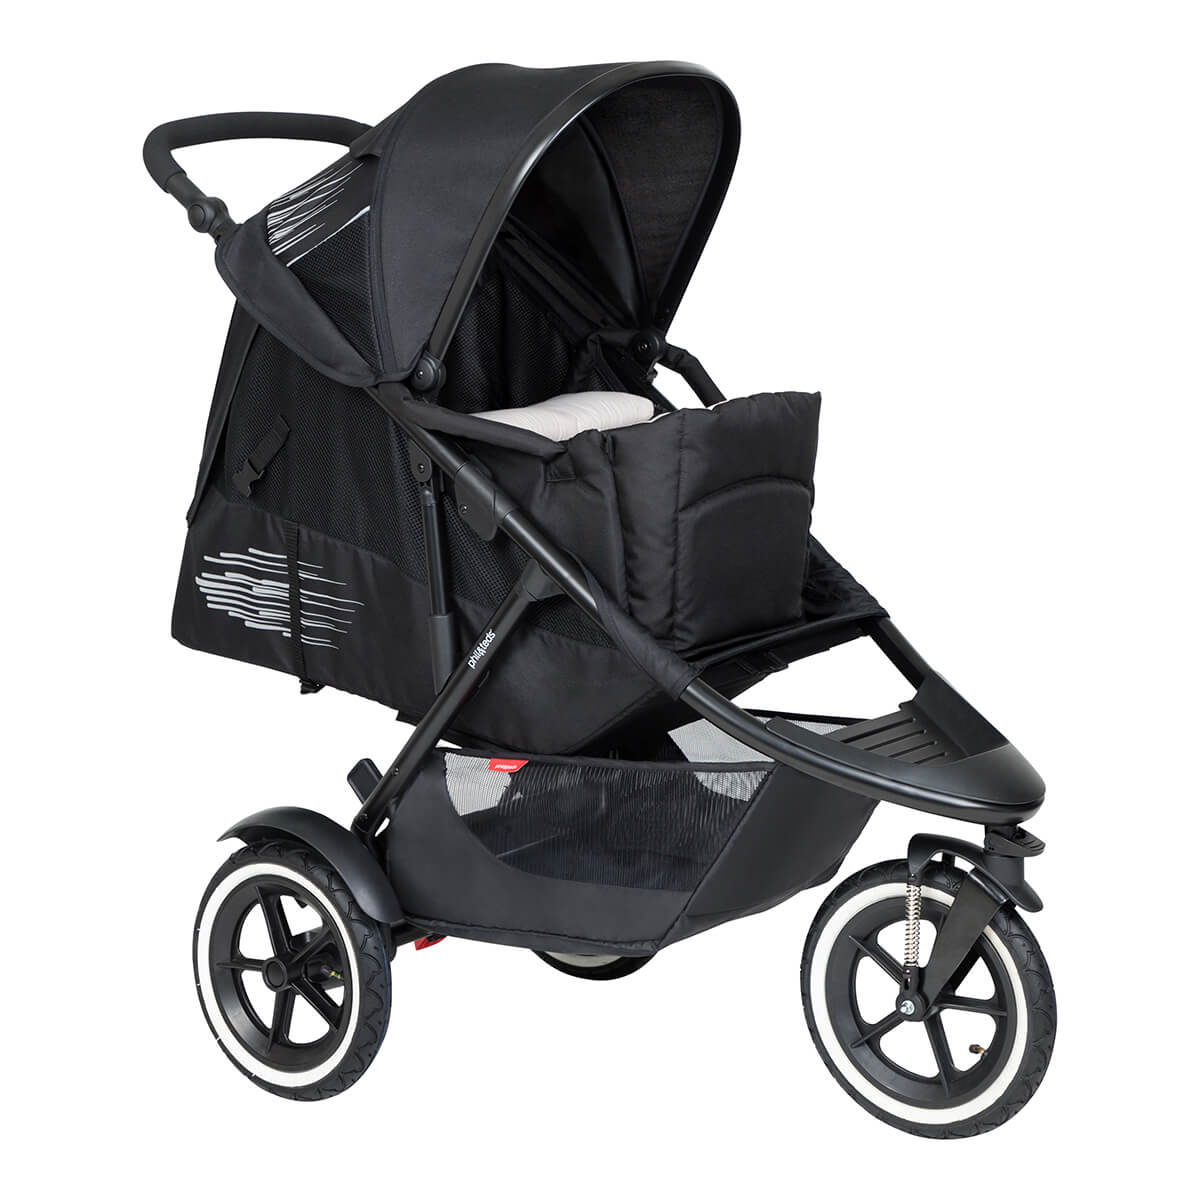 https://cdn.accentuate.io/4509867081825/19793938874538/philteds-sport-buggy-with-cocoon-full-recline-v1626485284054.jpg?1200x1200